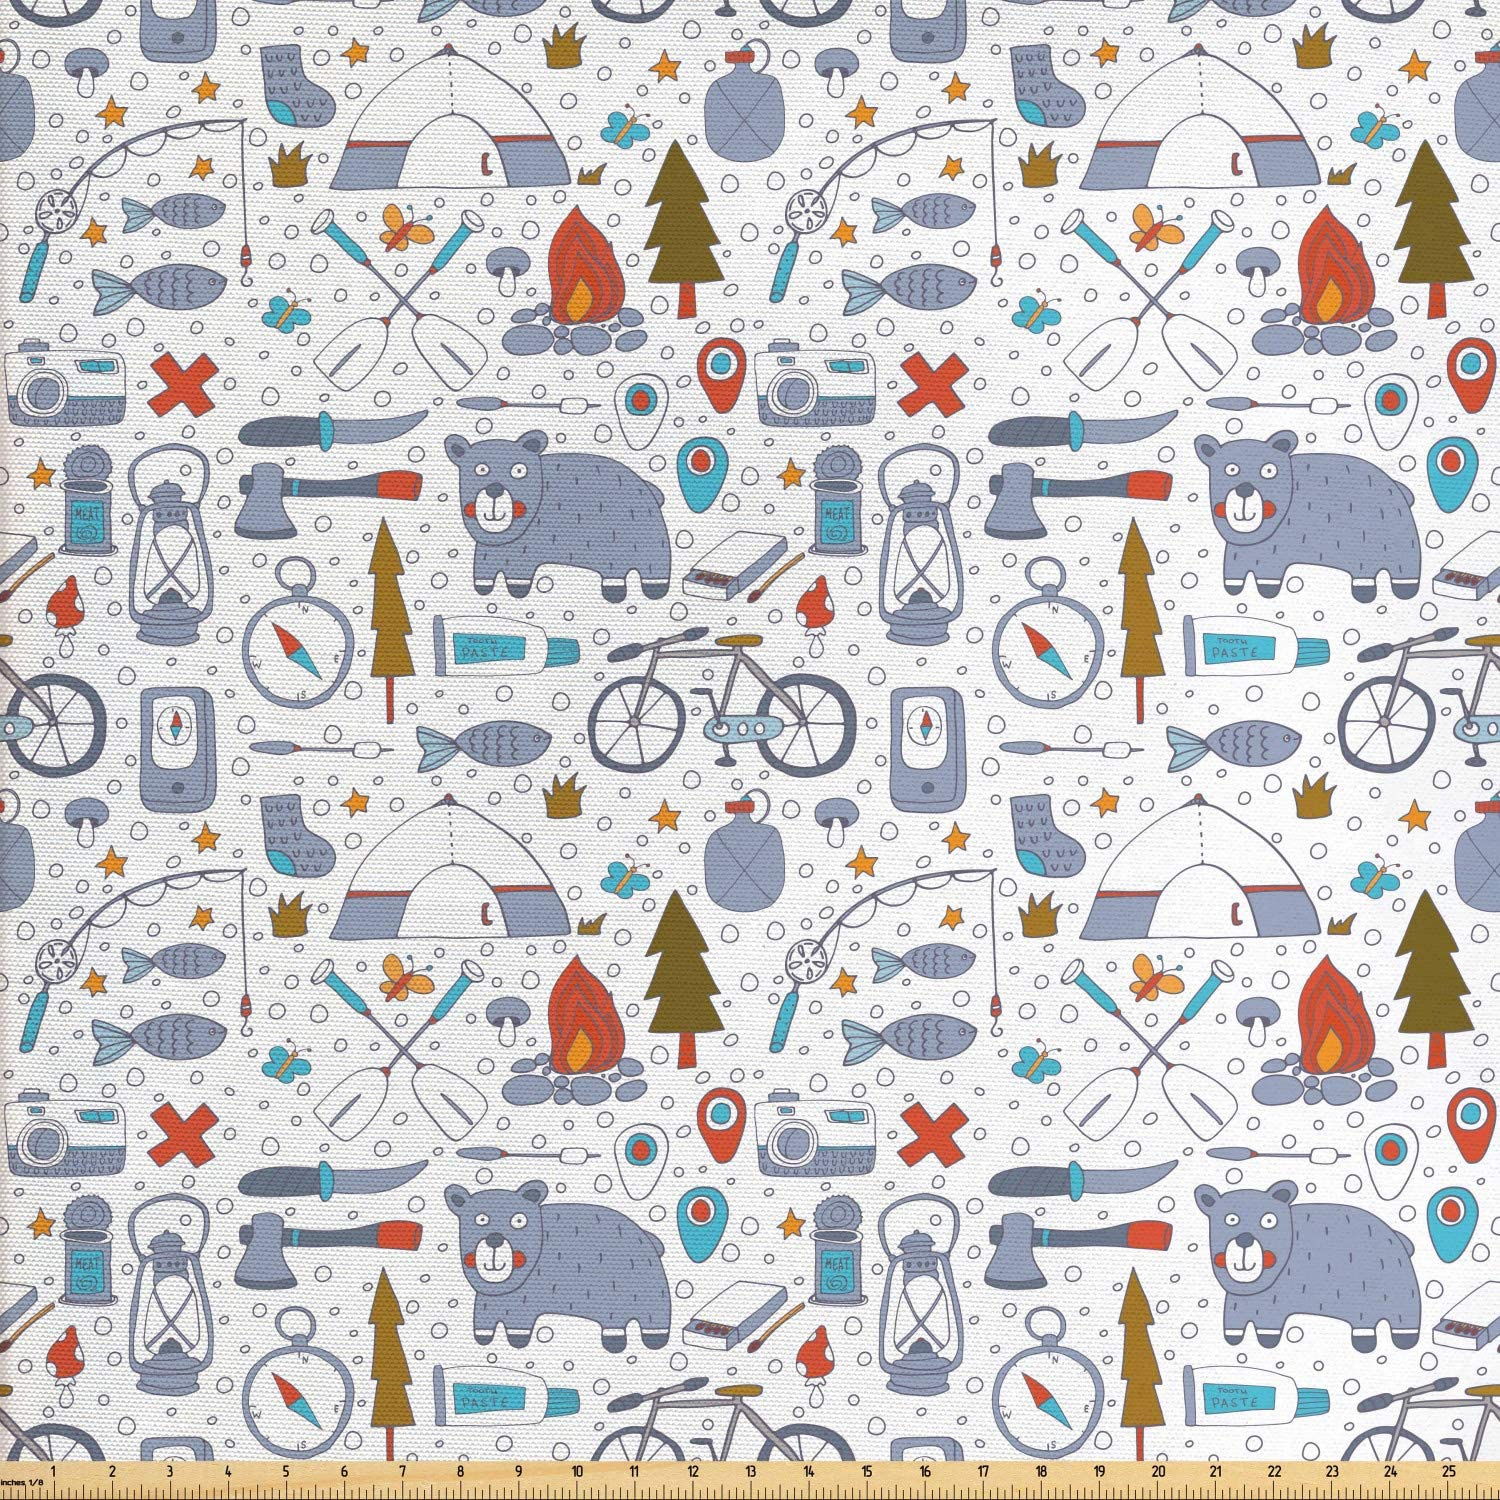 Lunarable Camping Fabric by The Yard, Cartoon Bear Tent and Compass Outdoor Hobby Theme Hiking Doodle, Decorative Fabric for Upholstery and Home Accents, 3 Yards, Vermilion Bluegrey